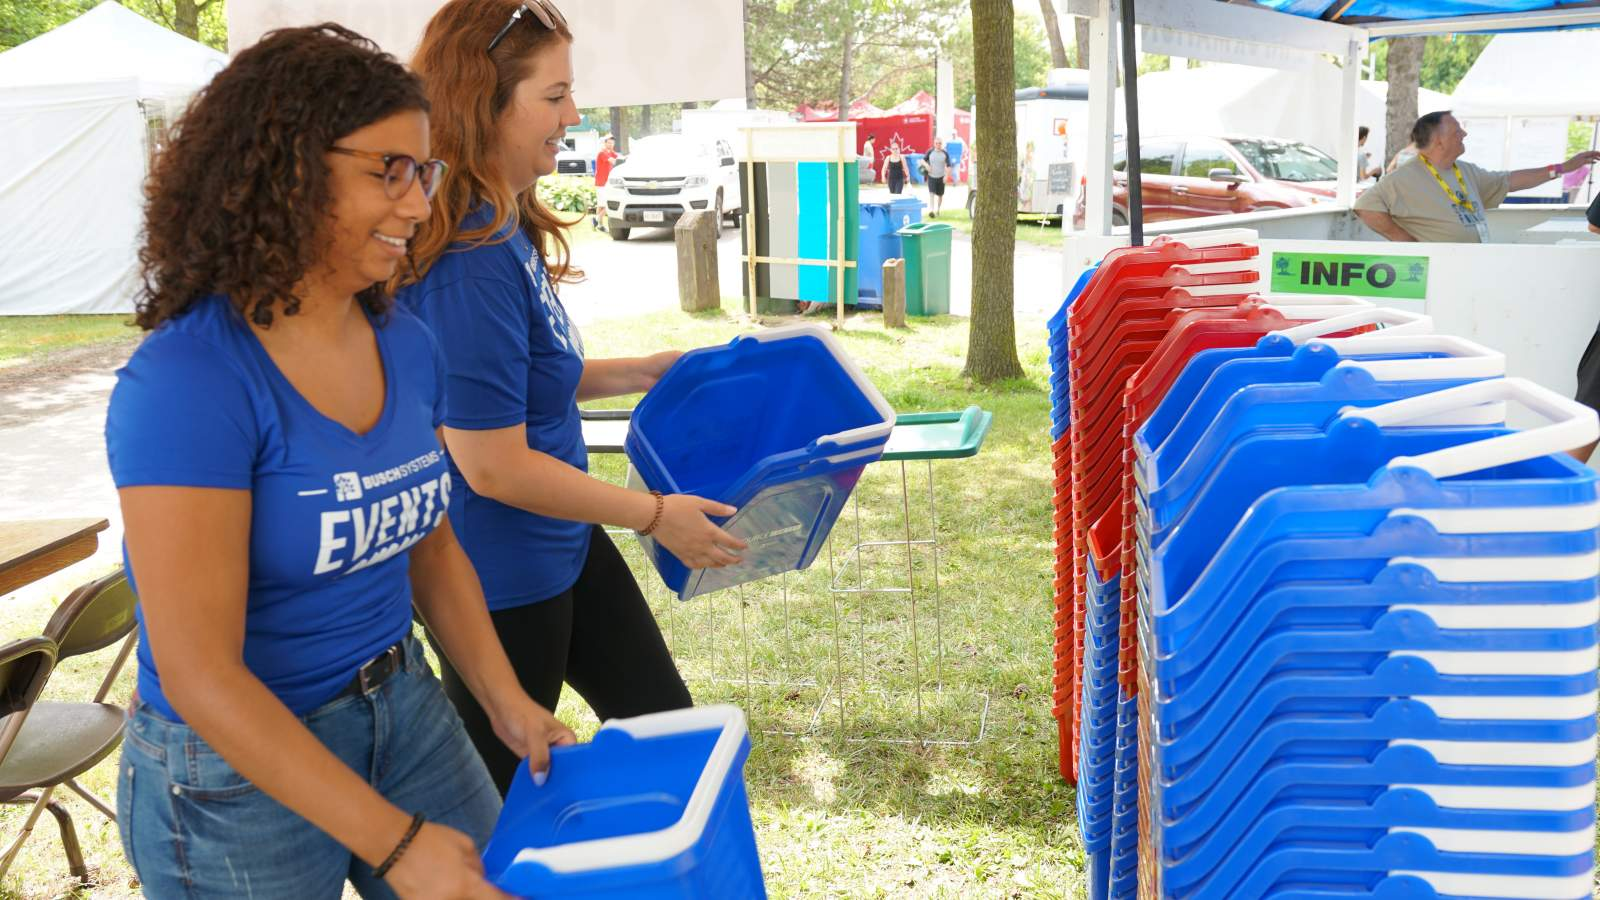 Busch Systems Waste Diversion Team helping set up Pollution Solution Tent